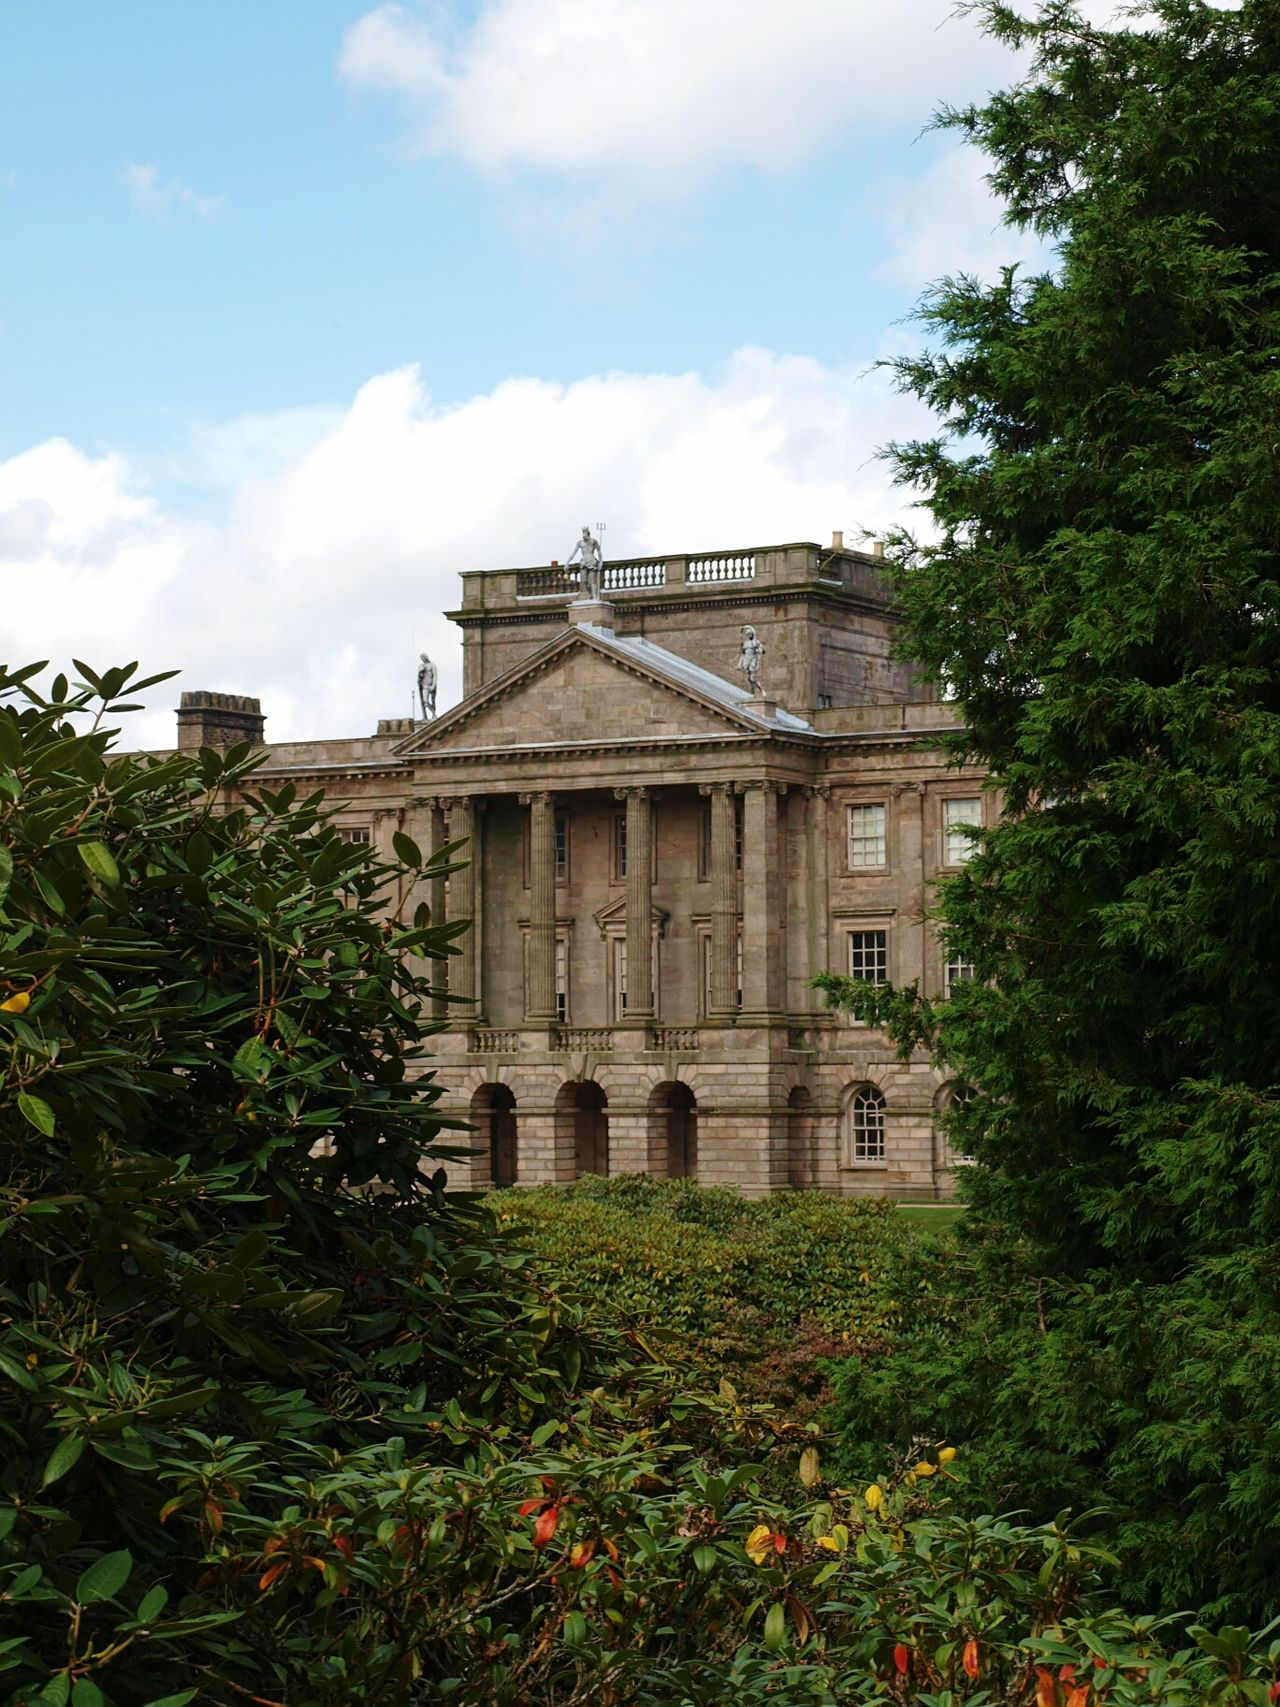 Architecture Built Structure Tree Gardens Historical Building Building Exterior Impressive Locations Lyme Park Cheshire